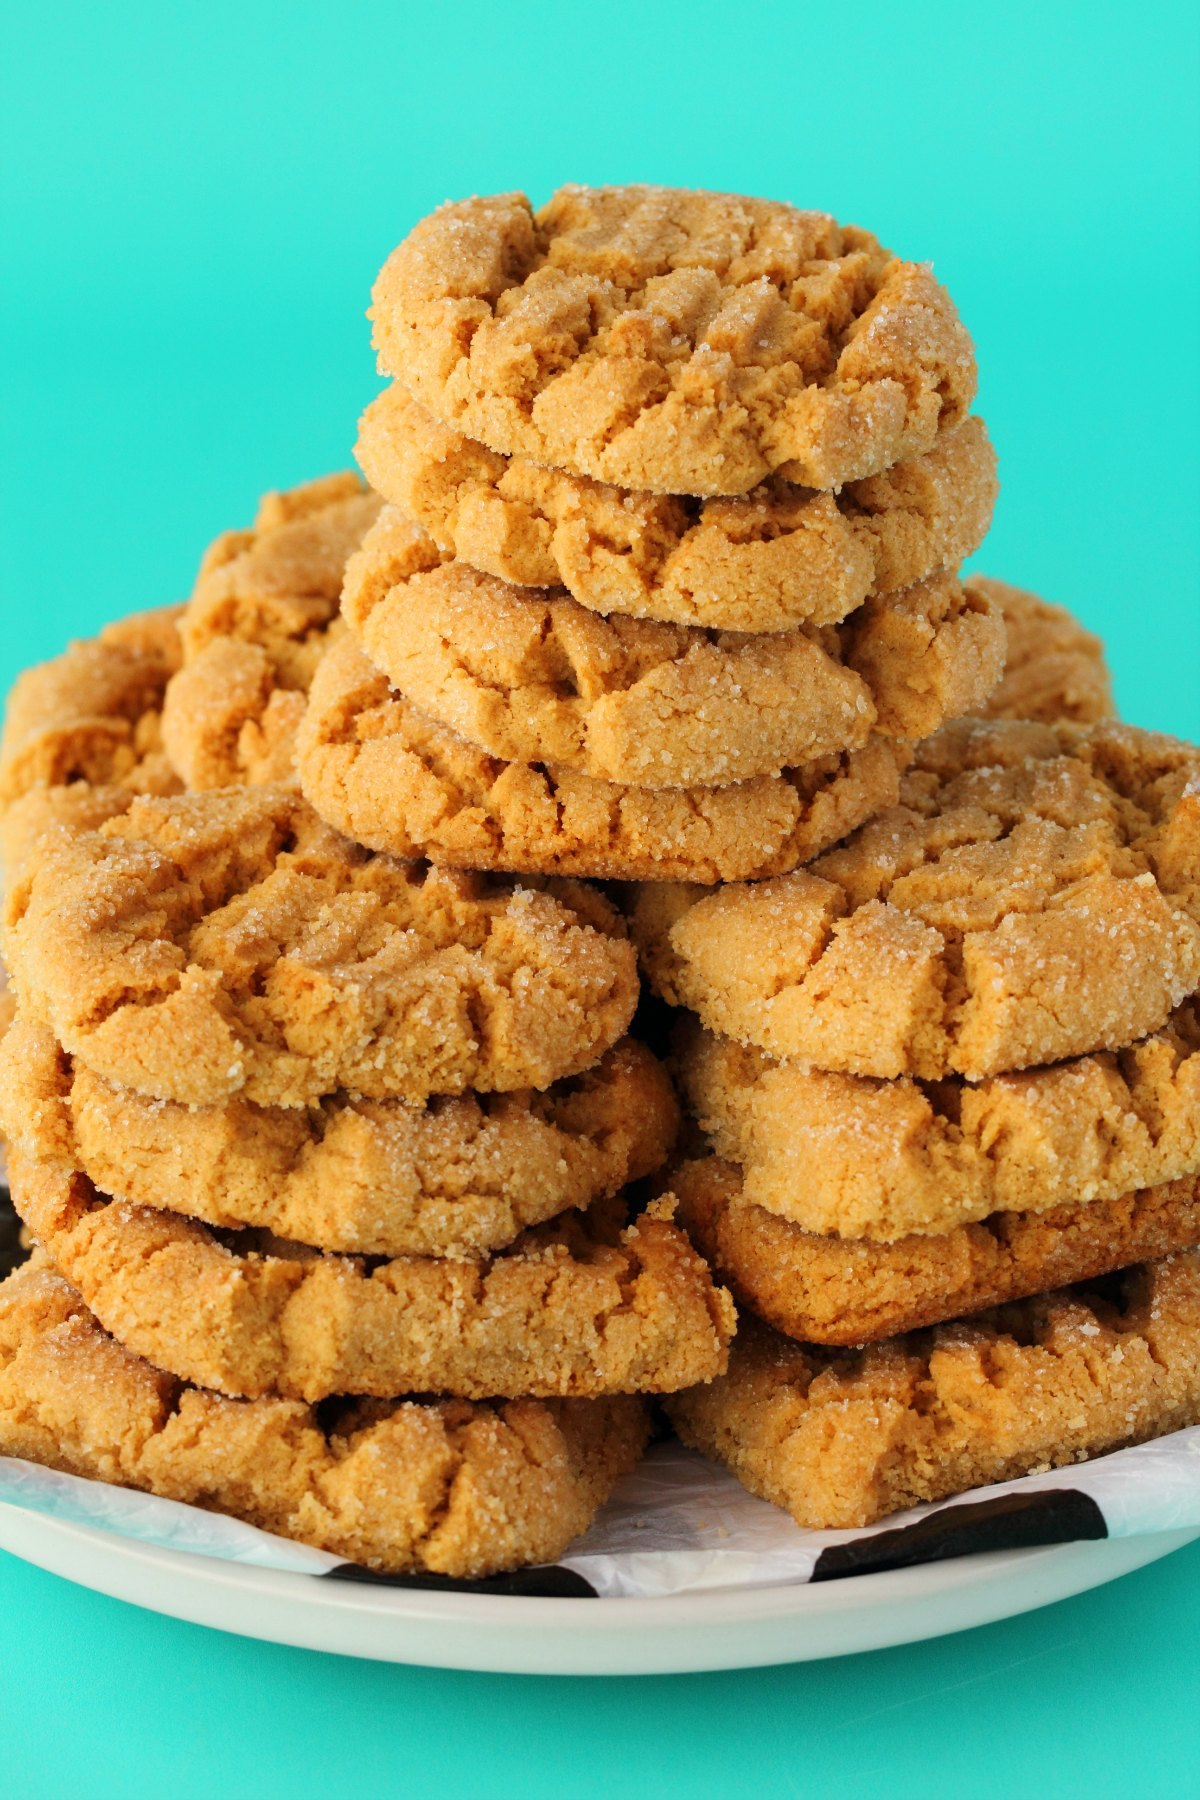 Cookies stacked up on a white plate.